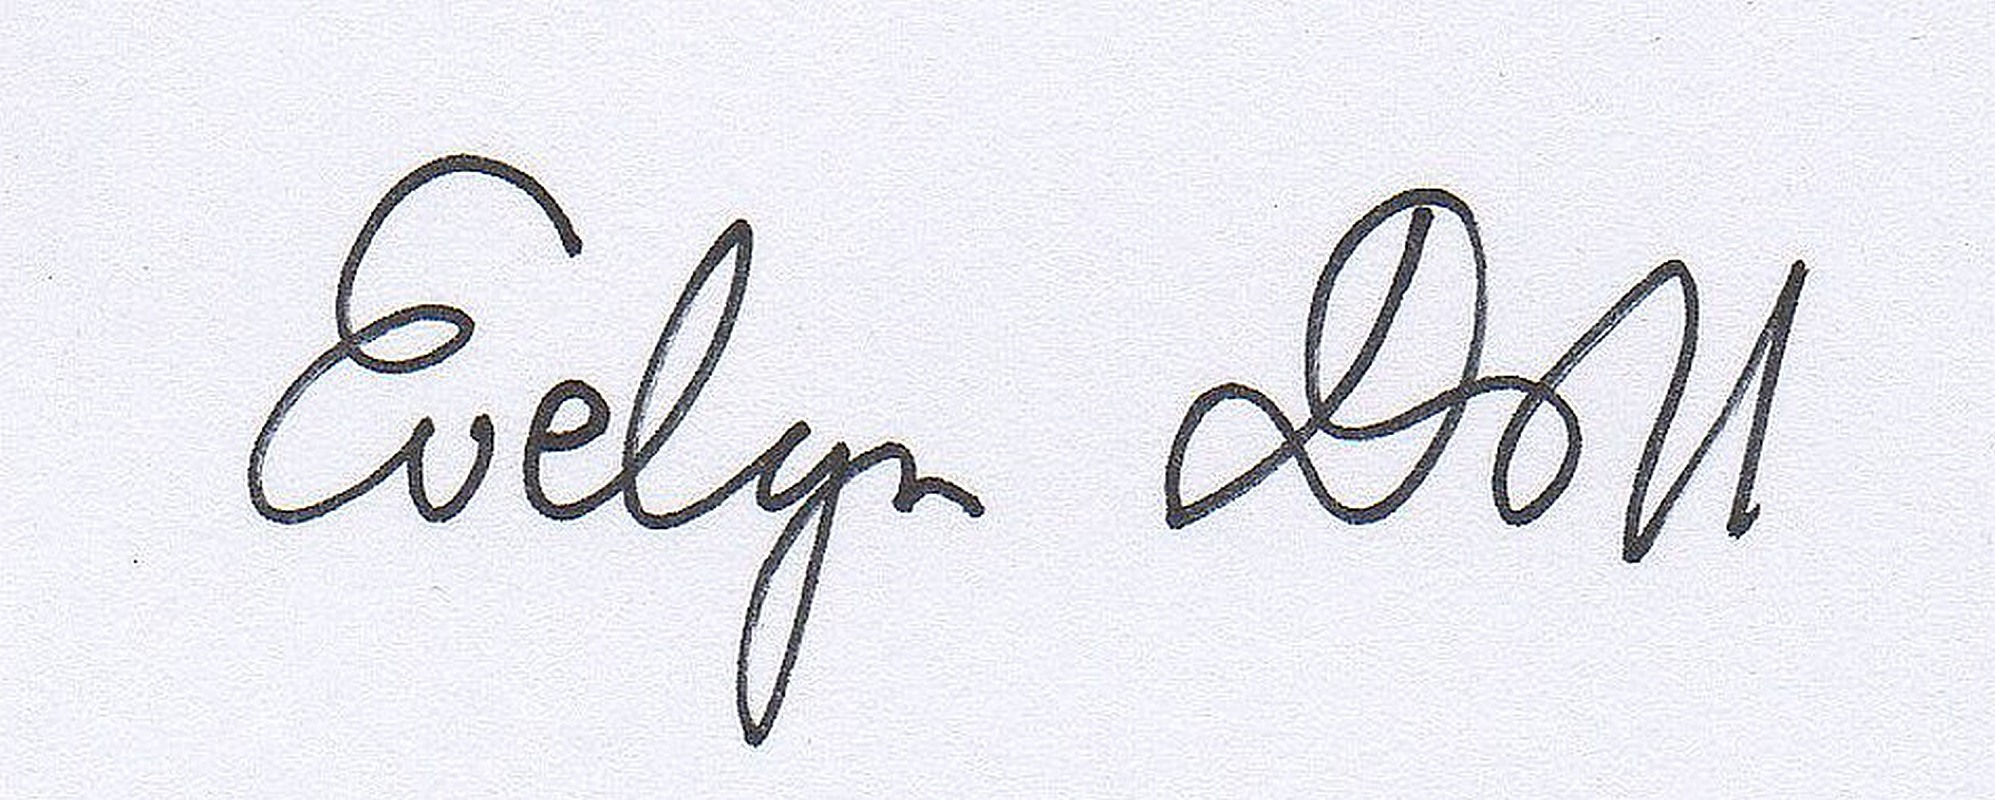 Evelyn Doll Signature